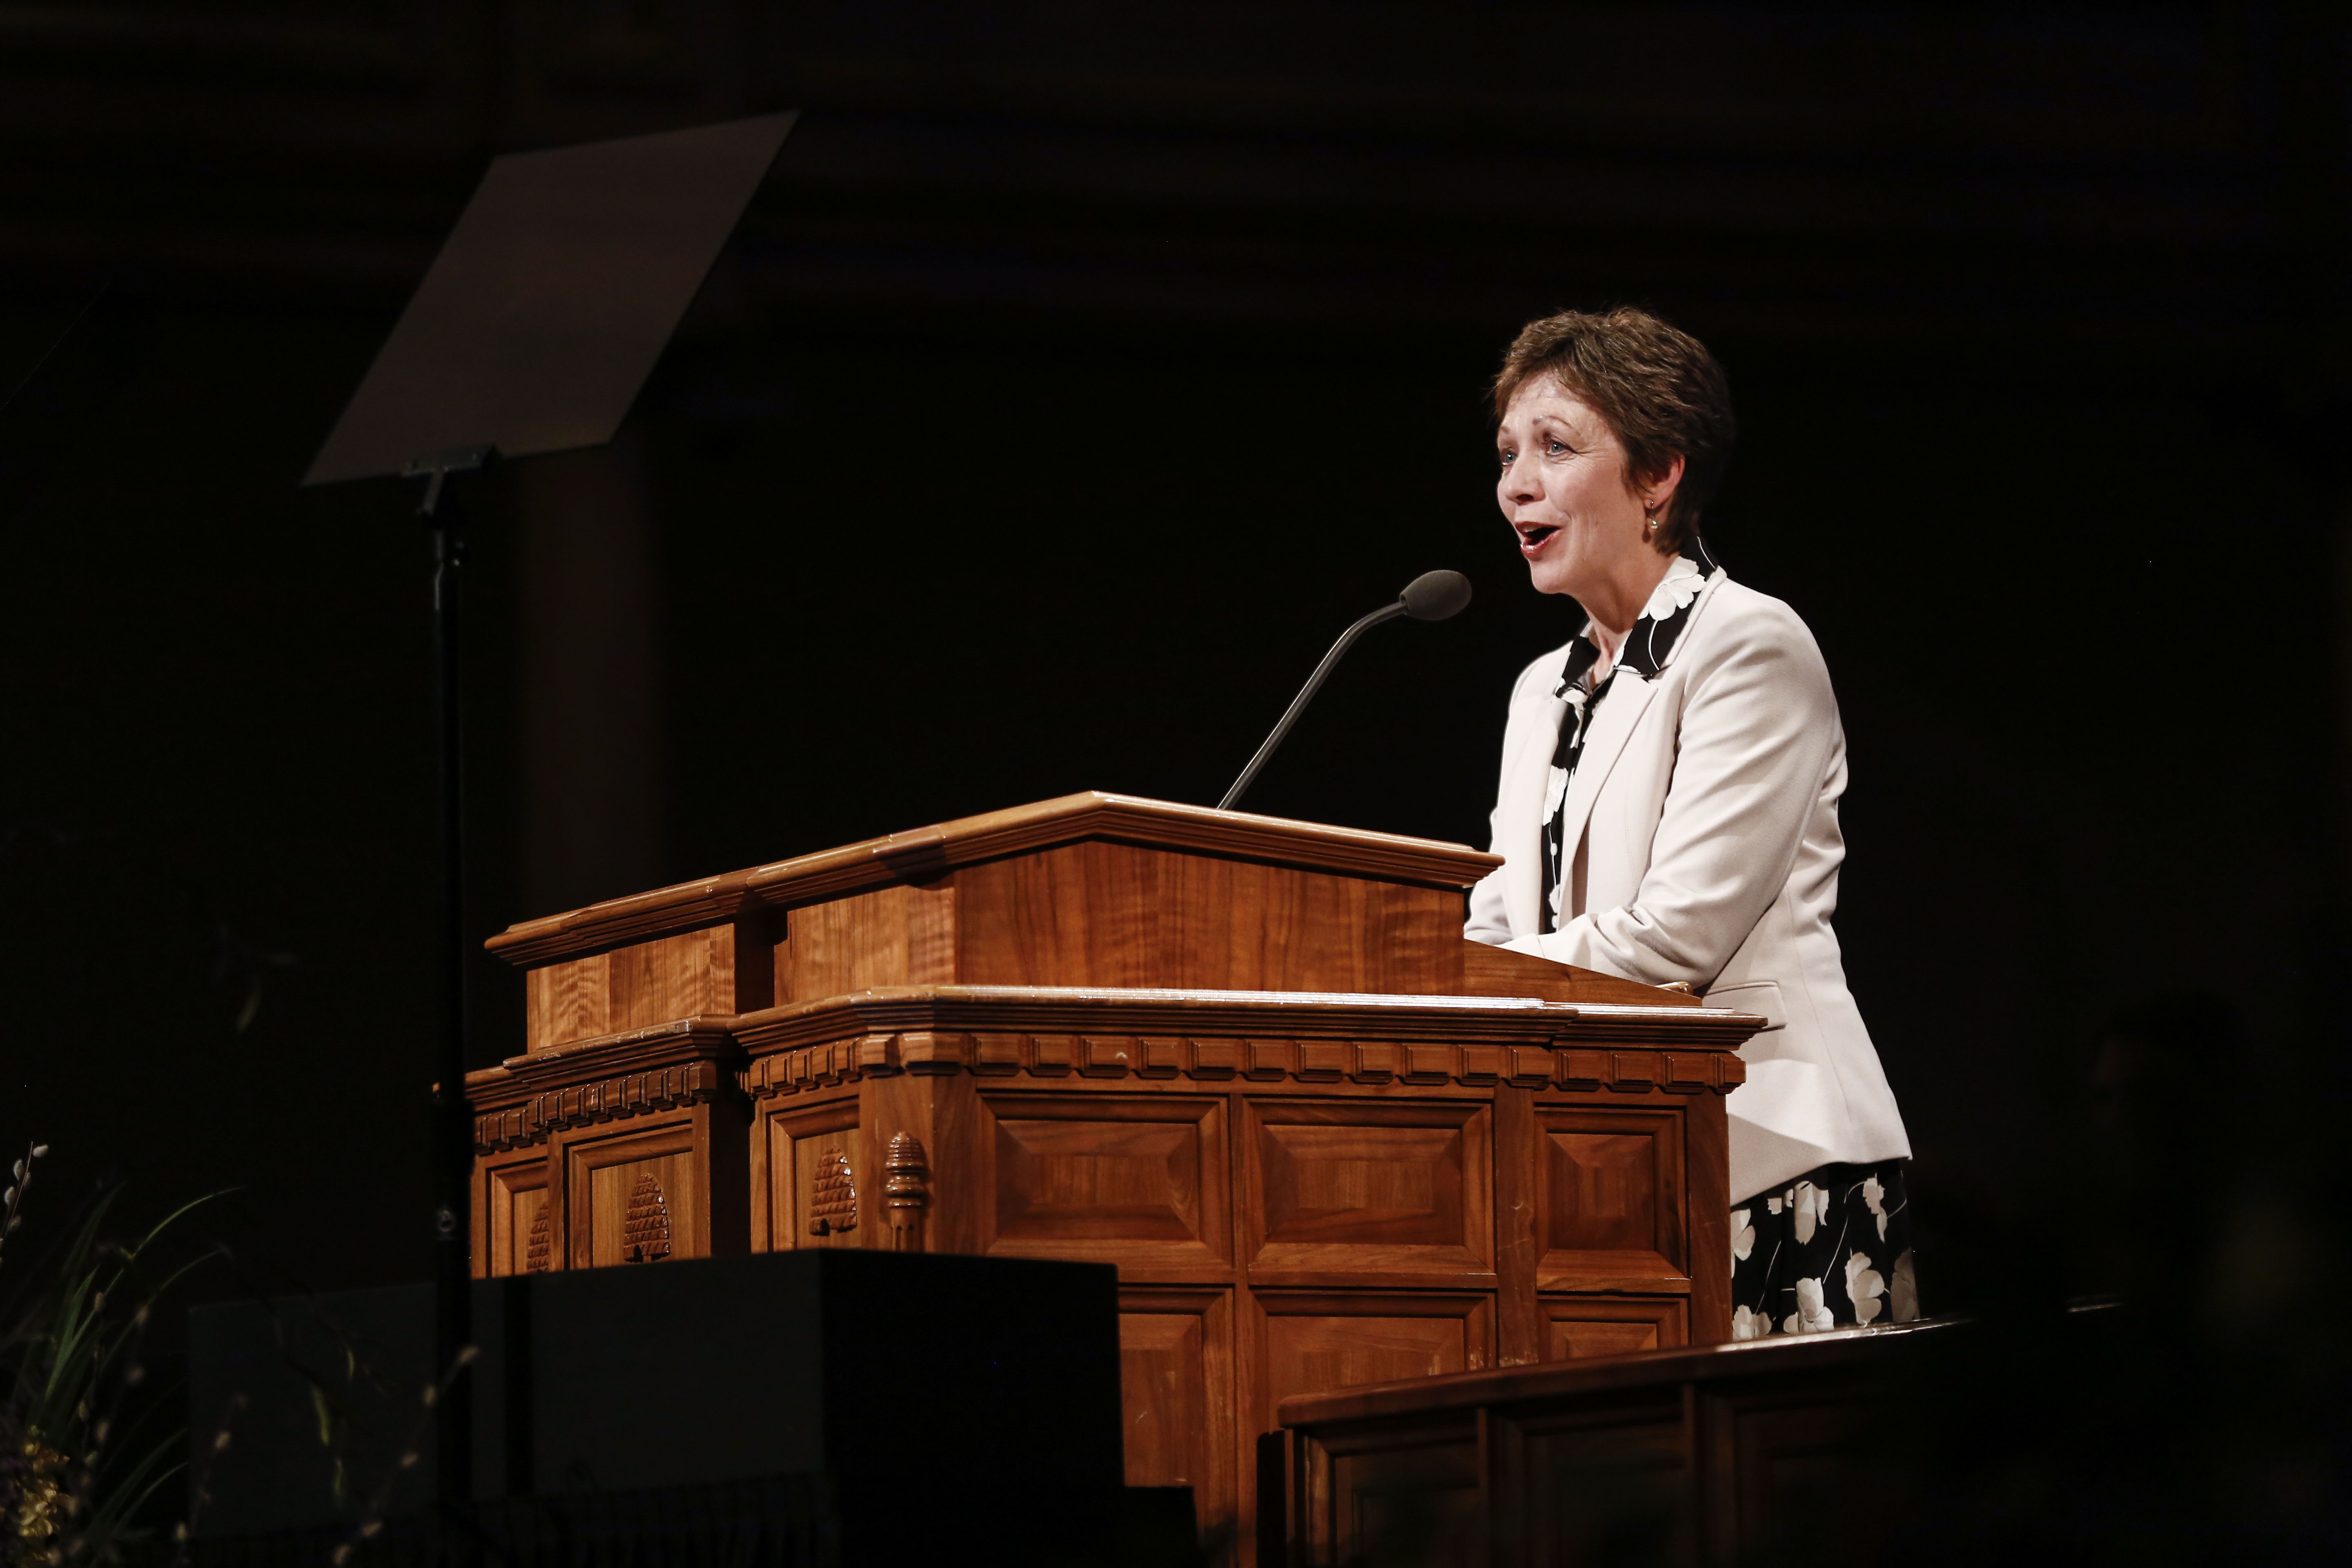 Sister Lynette Cook speaks during the Worldwide Devotional for Young Adults at the Salt Lake Tabernacle in Salt Lake City on Sunday, May 5, 2019.